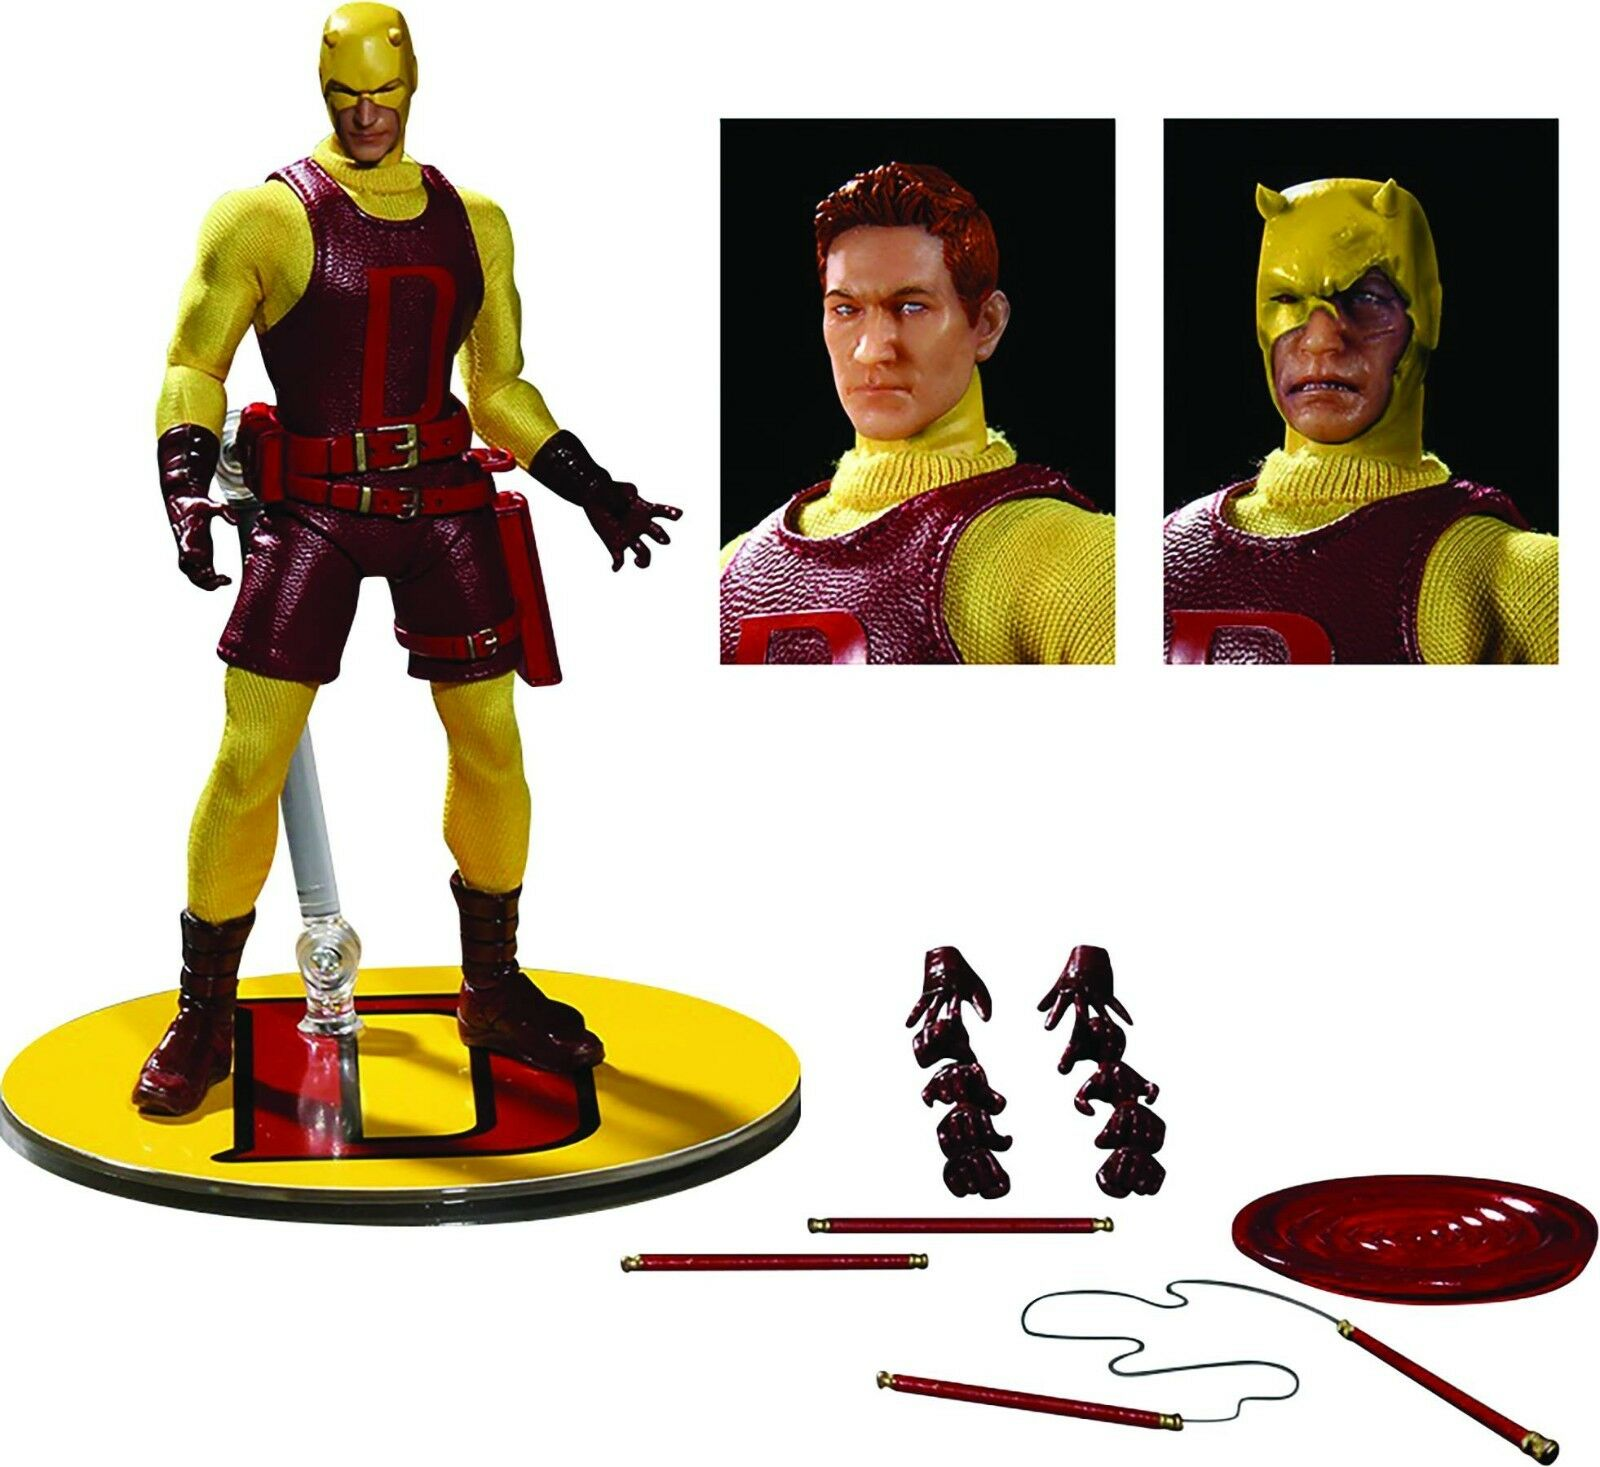 2017 MARVEL COMICS PX MEZCO ONE 12 Collectif  jaune Darougeevil figurine Comme neuf IN BOX  grande vente